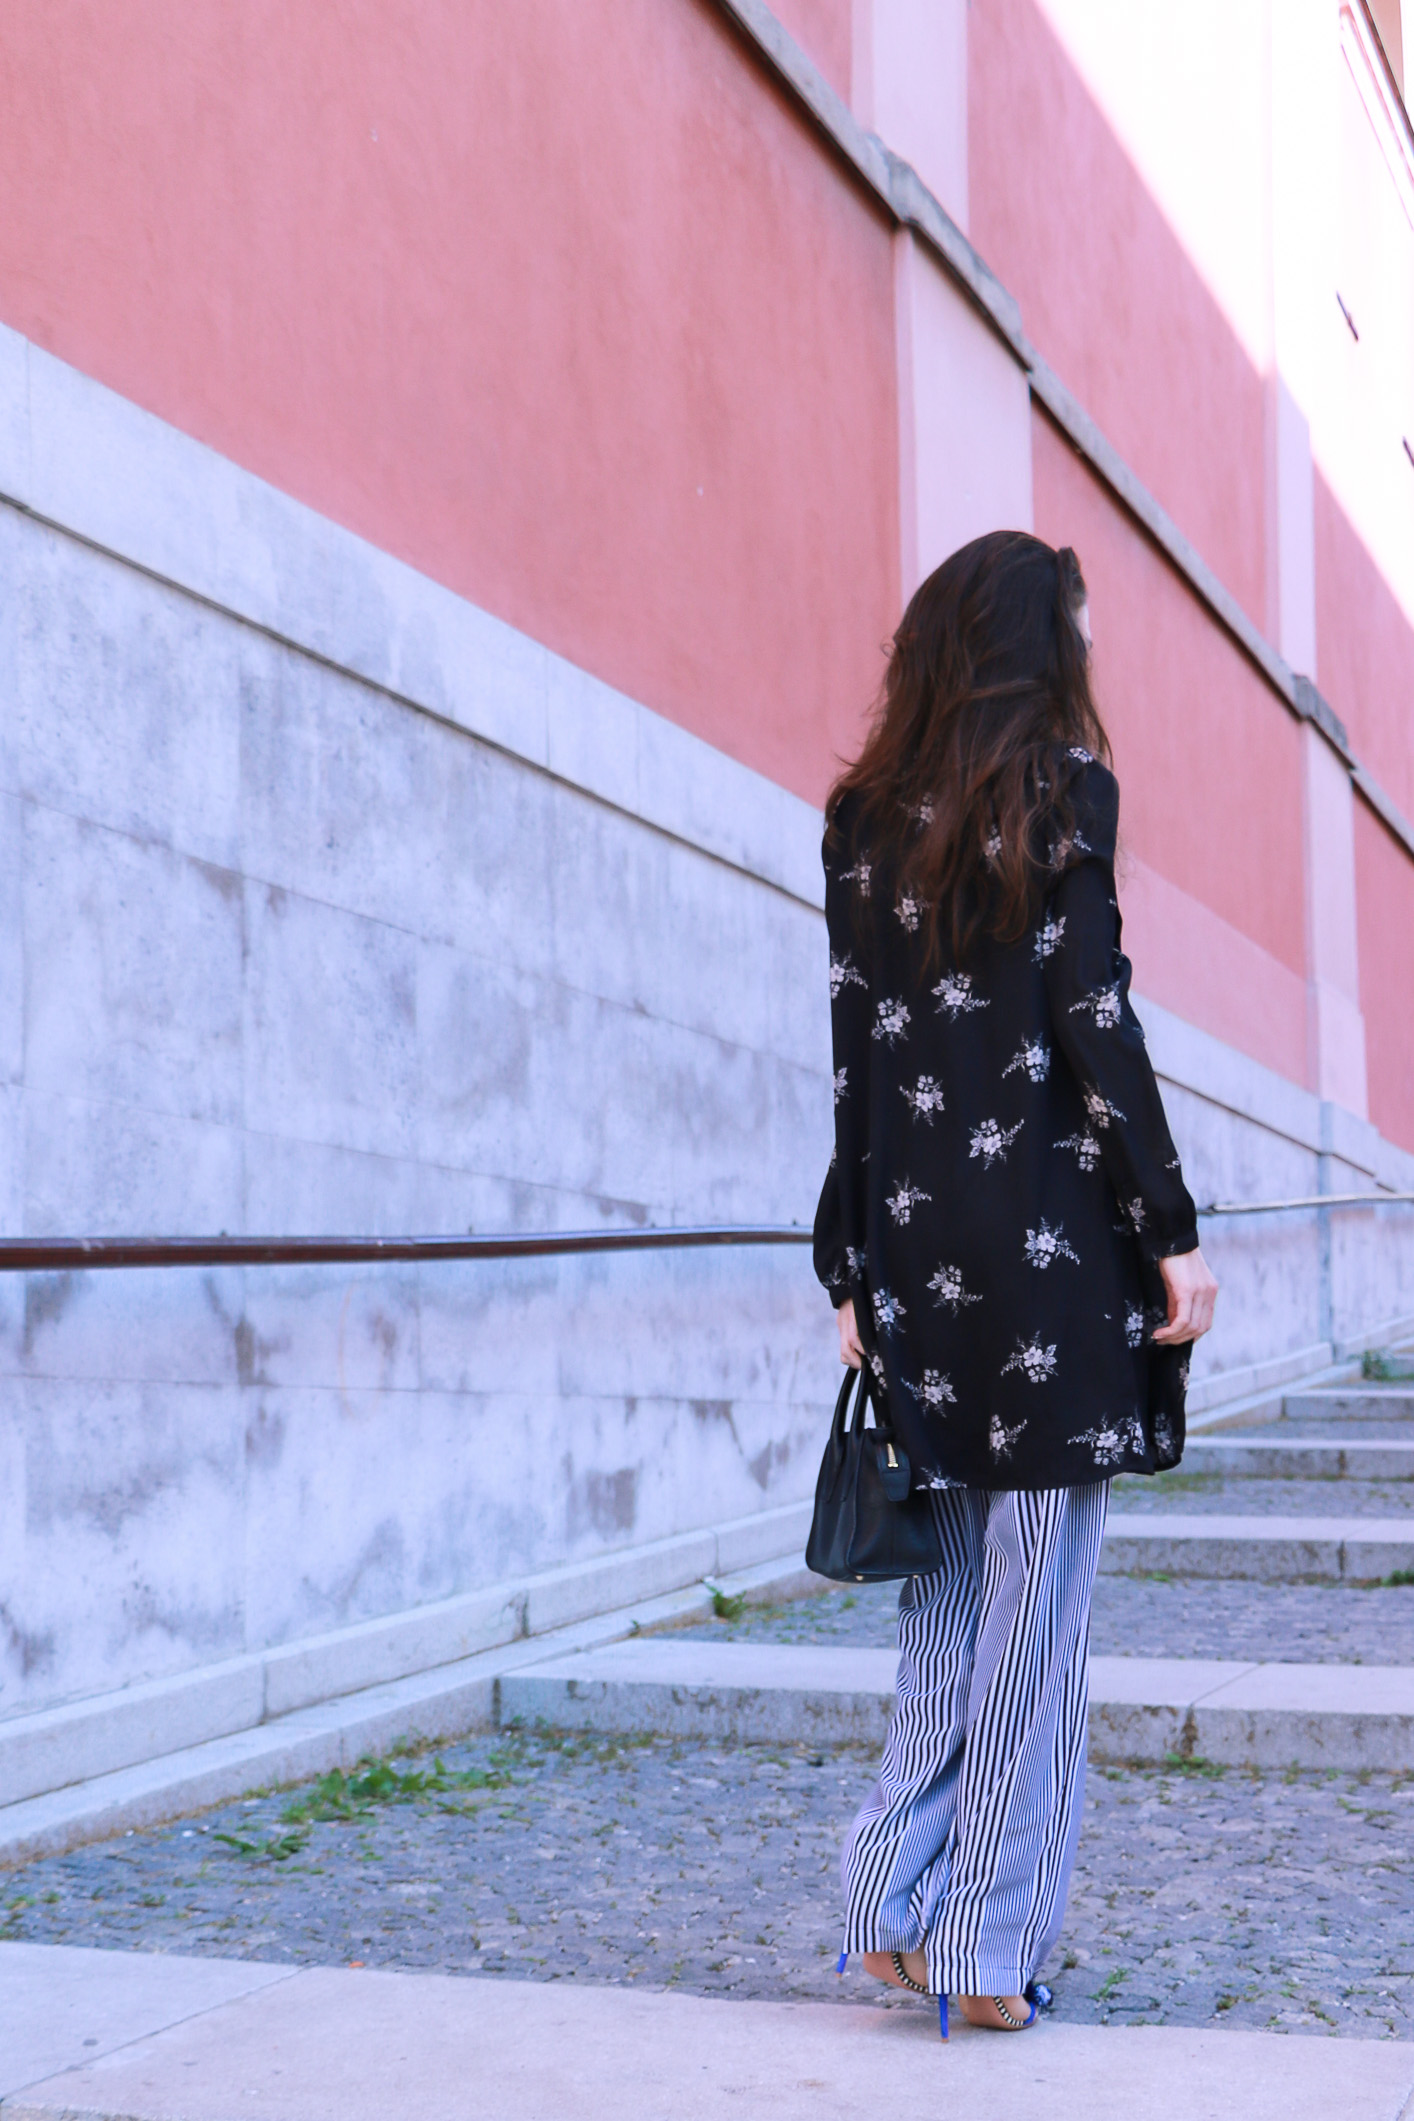 Fashion blogger Veronika Lipar of Brunette From Wall Street sharing how to do layering this summer wearing dark floral shirt dress and wide-leg pants